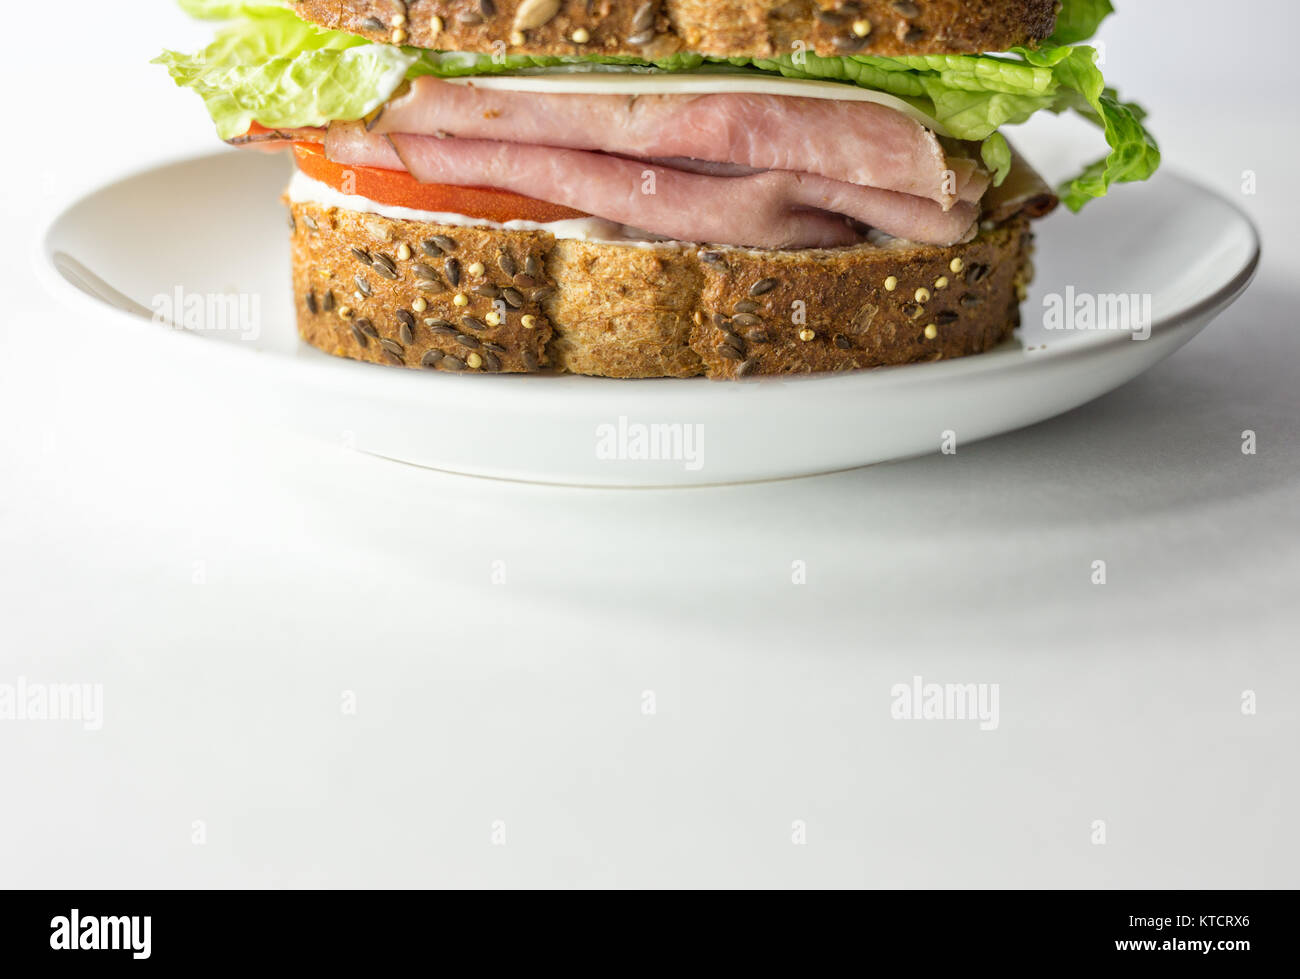 Ham Sandwich Made With Artisan Bread On A White Plate Copy Space Background